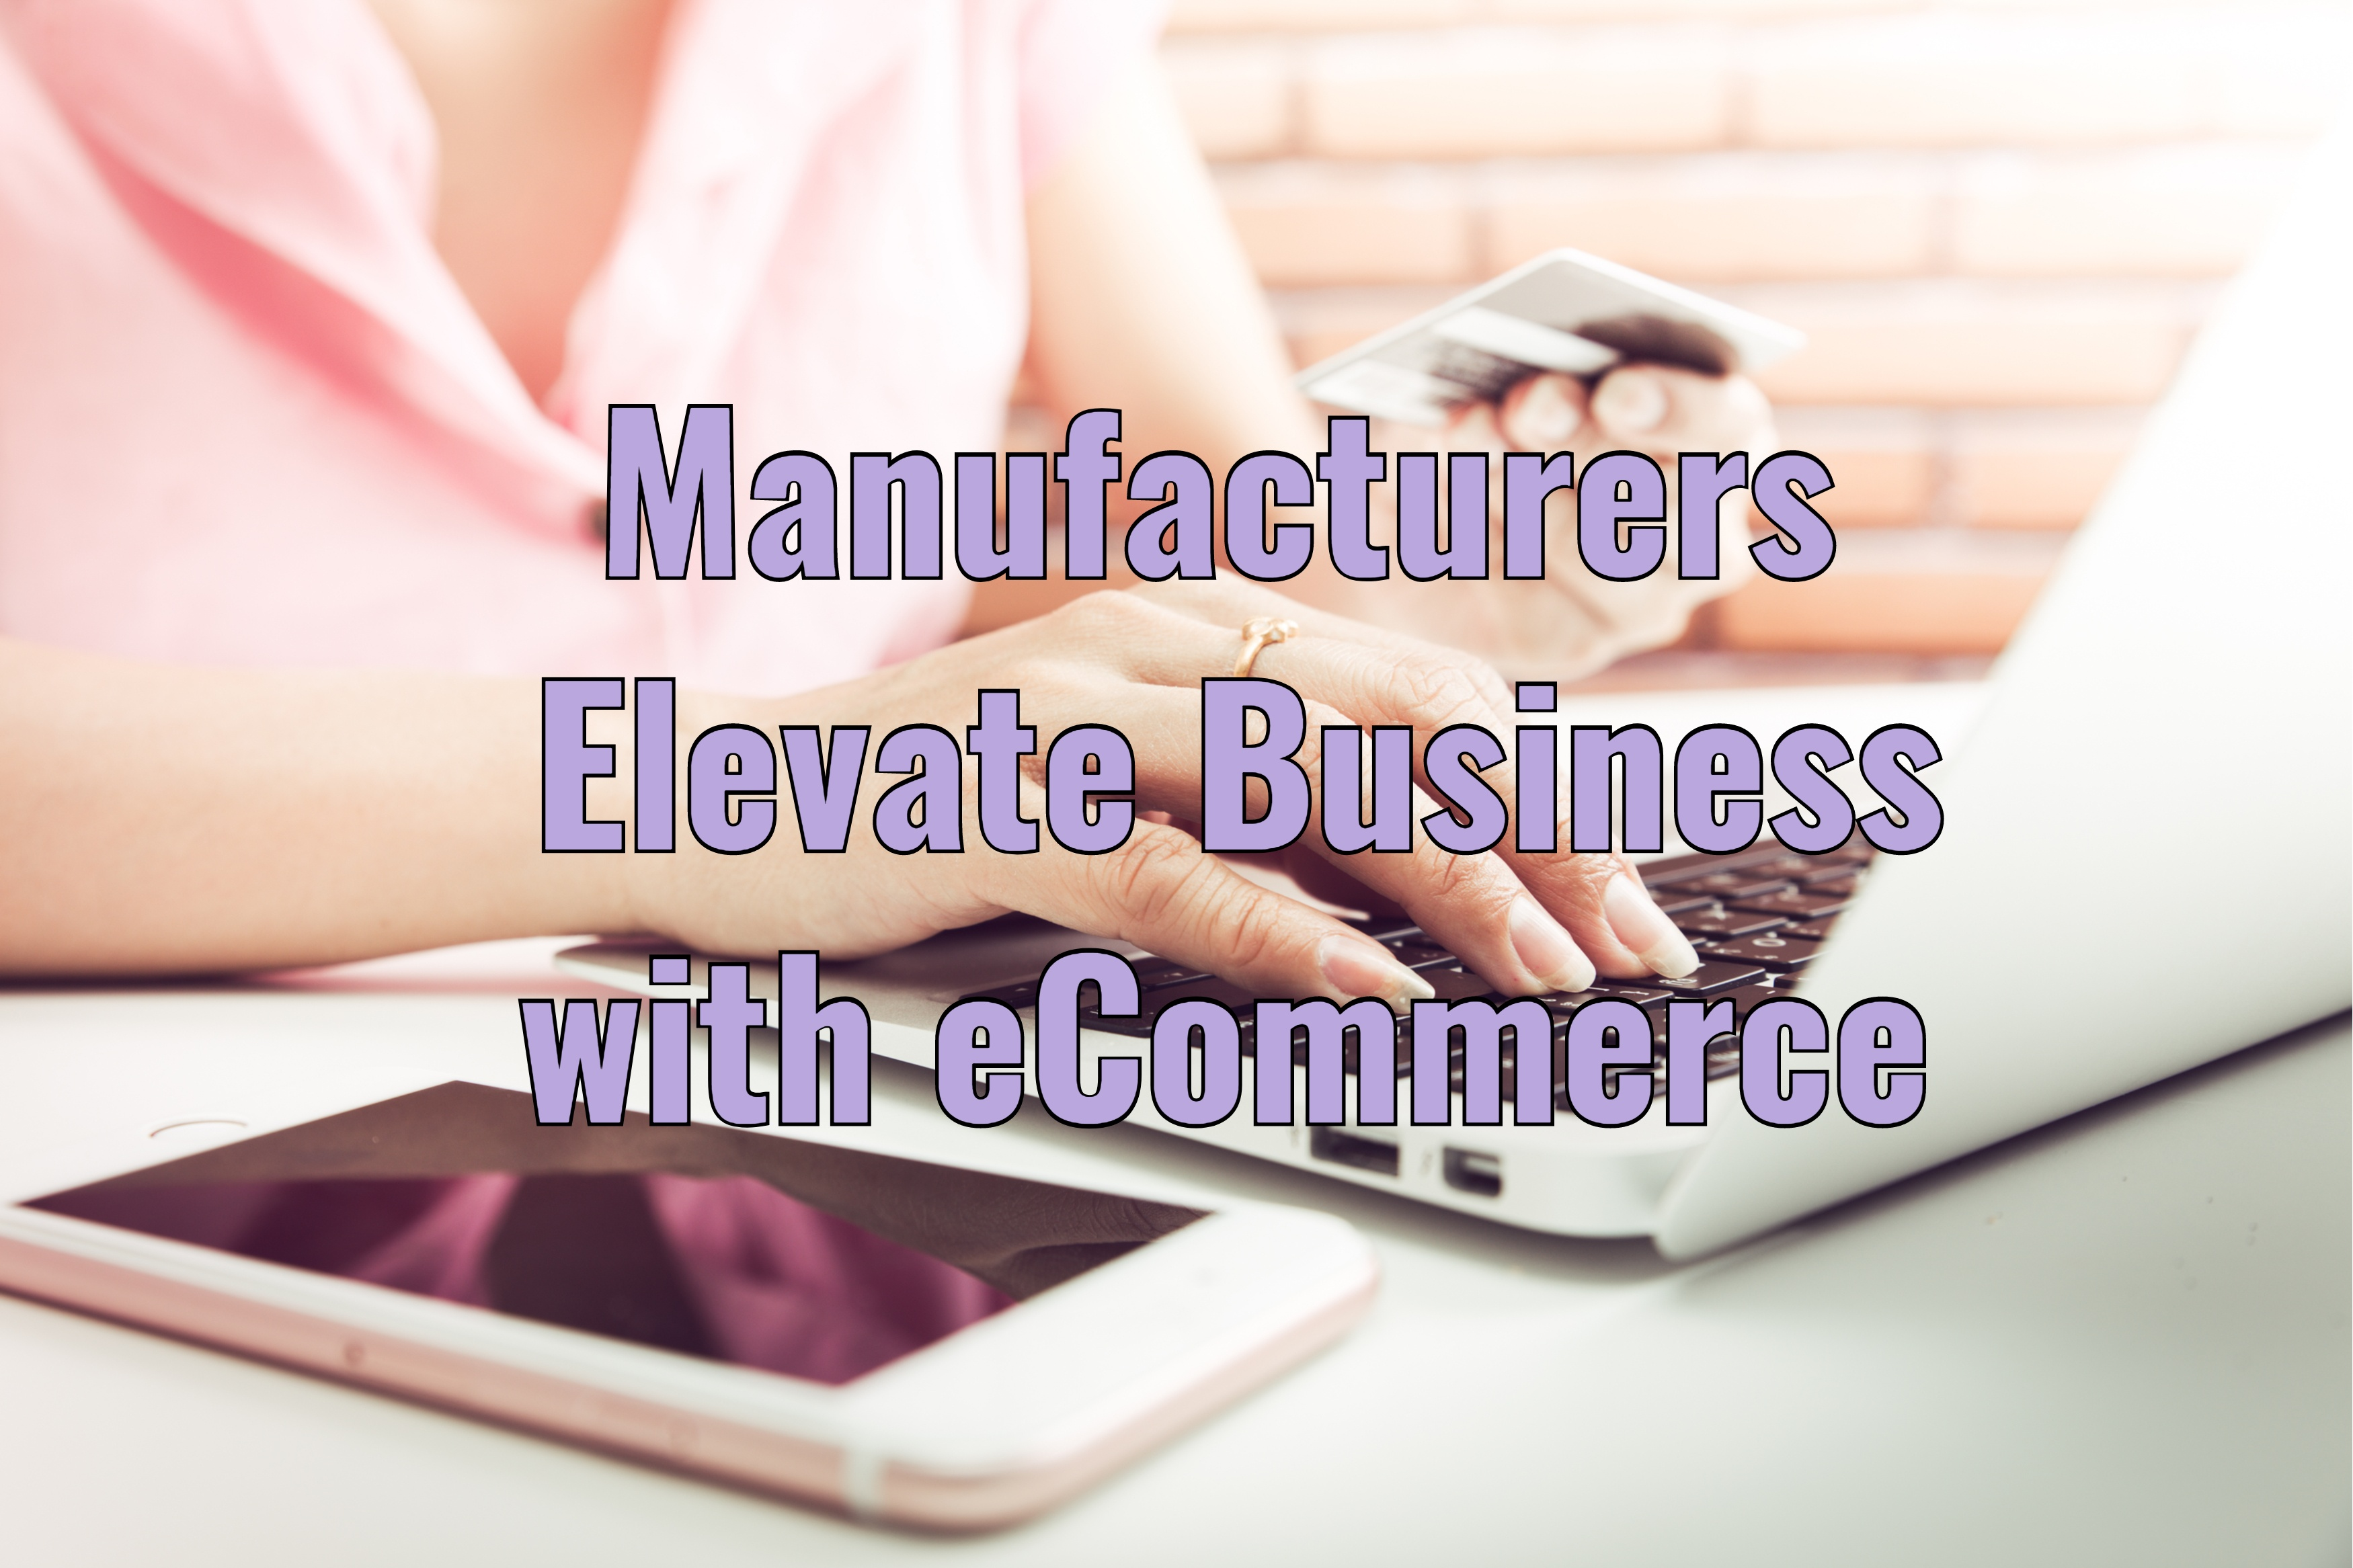 Manufacturers Elevate Their Business to New Heights Using eCommerce